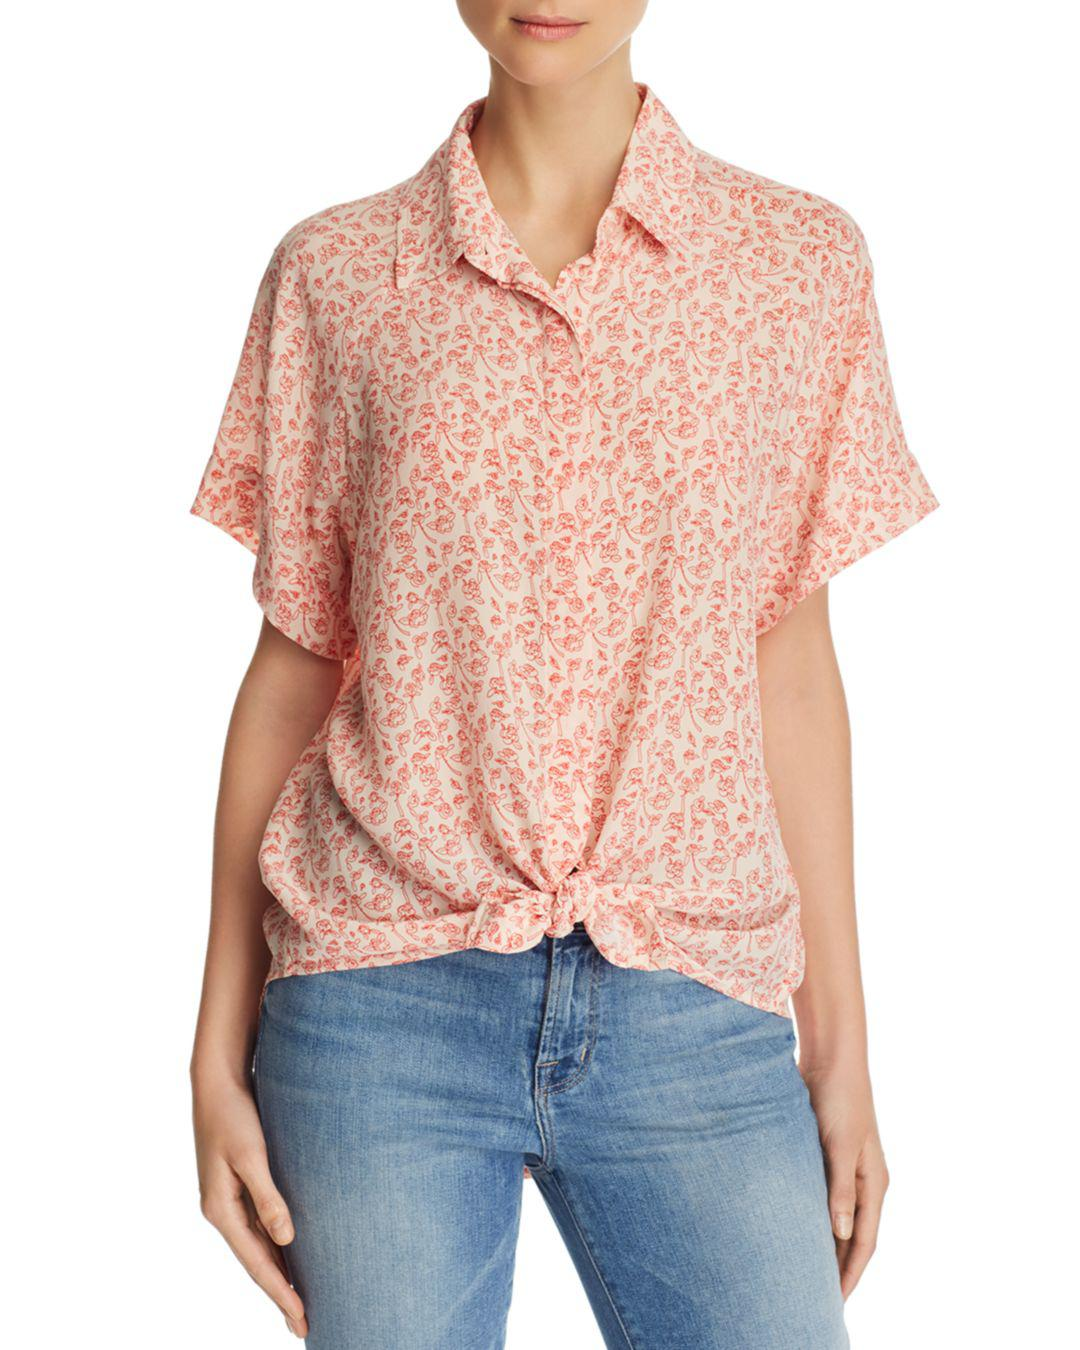 767f6068817ca9 Lyst - 7 For All Mankind Tie-front Printed-silk Top in Pink